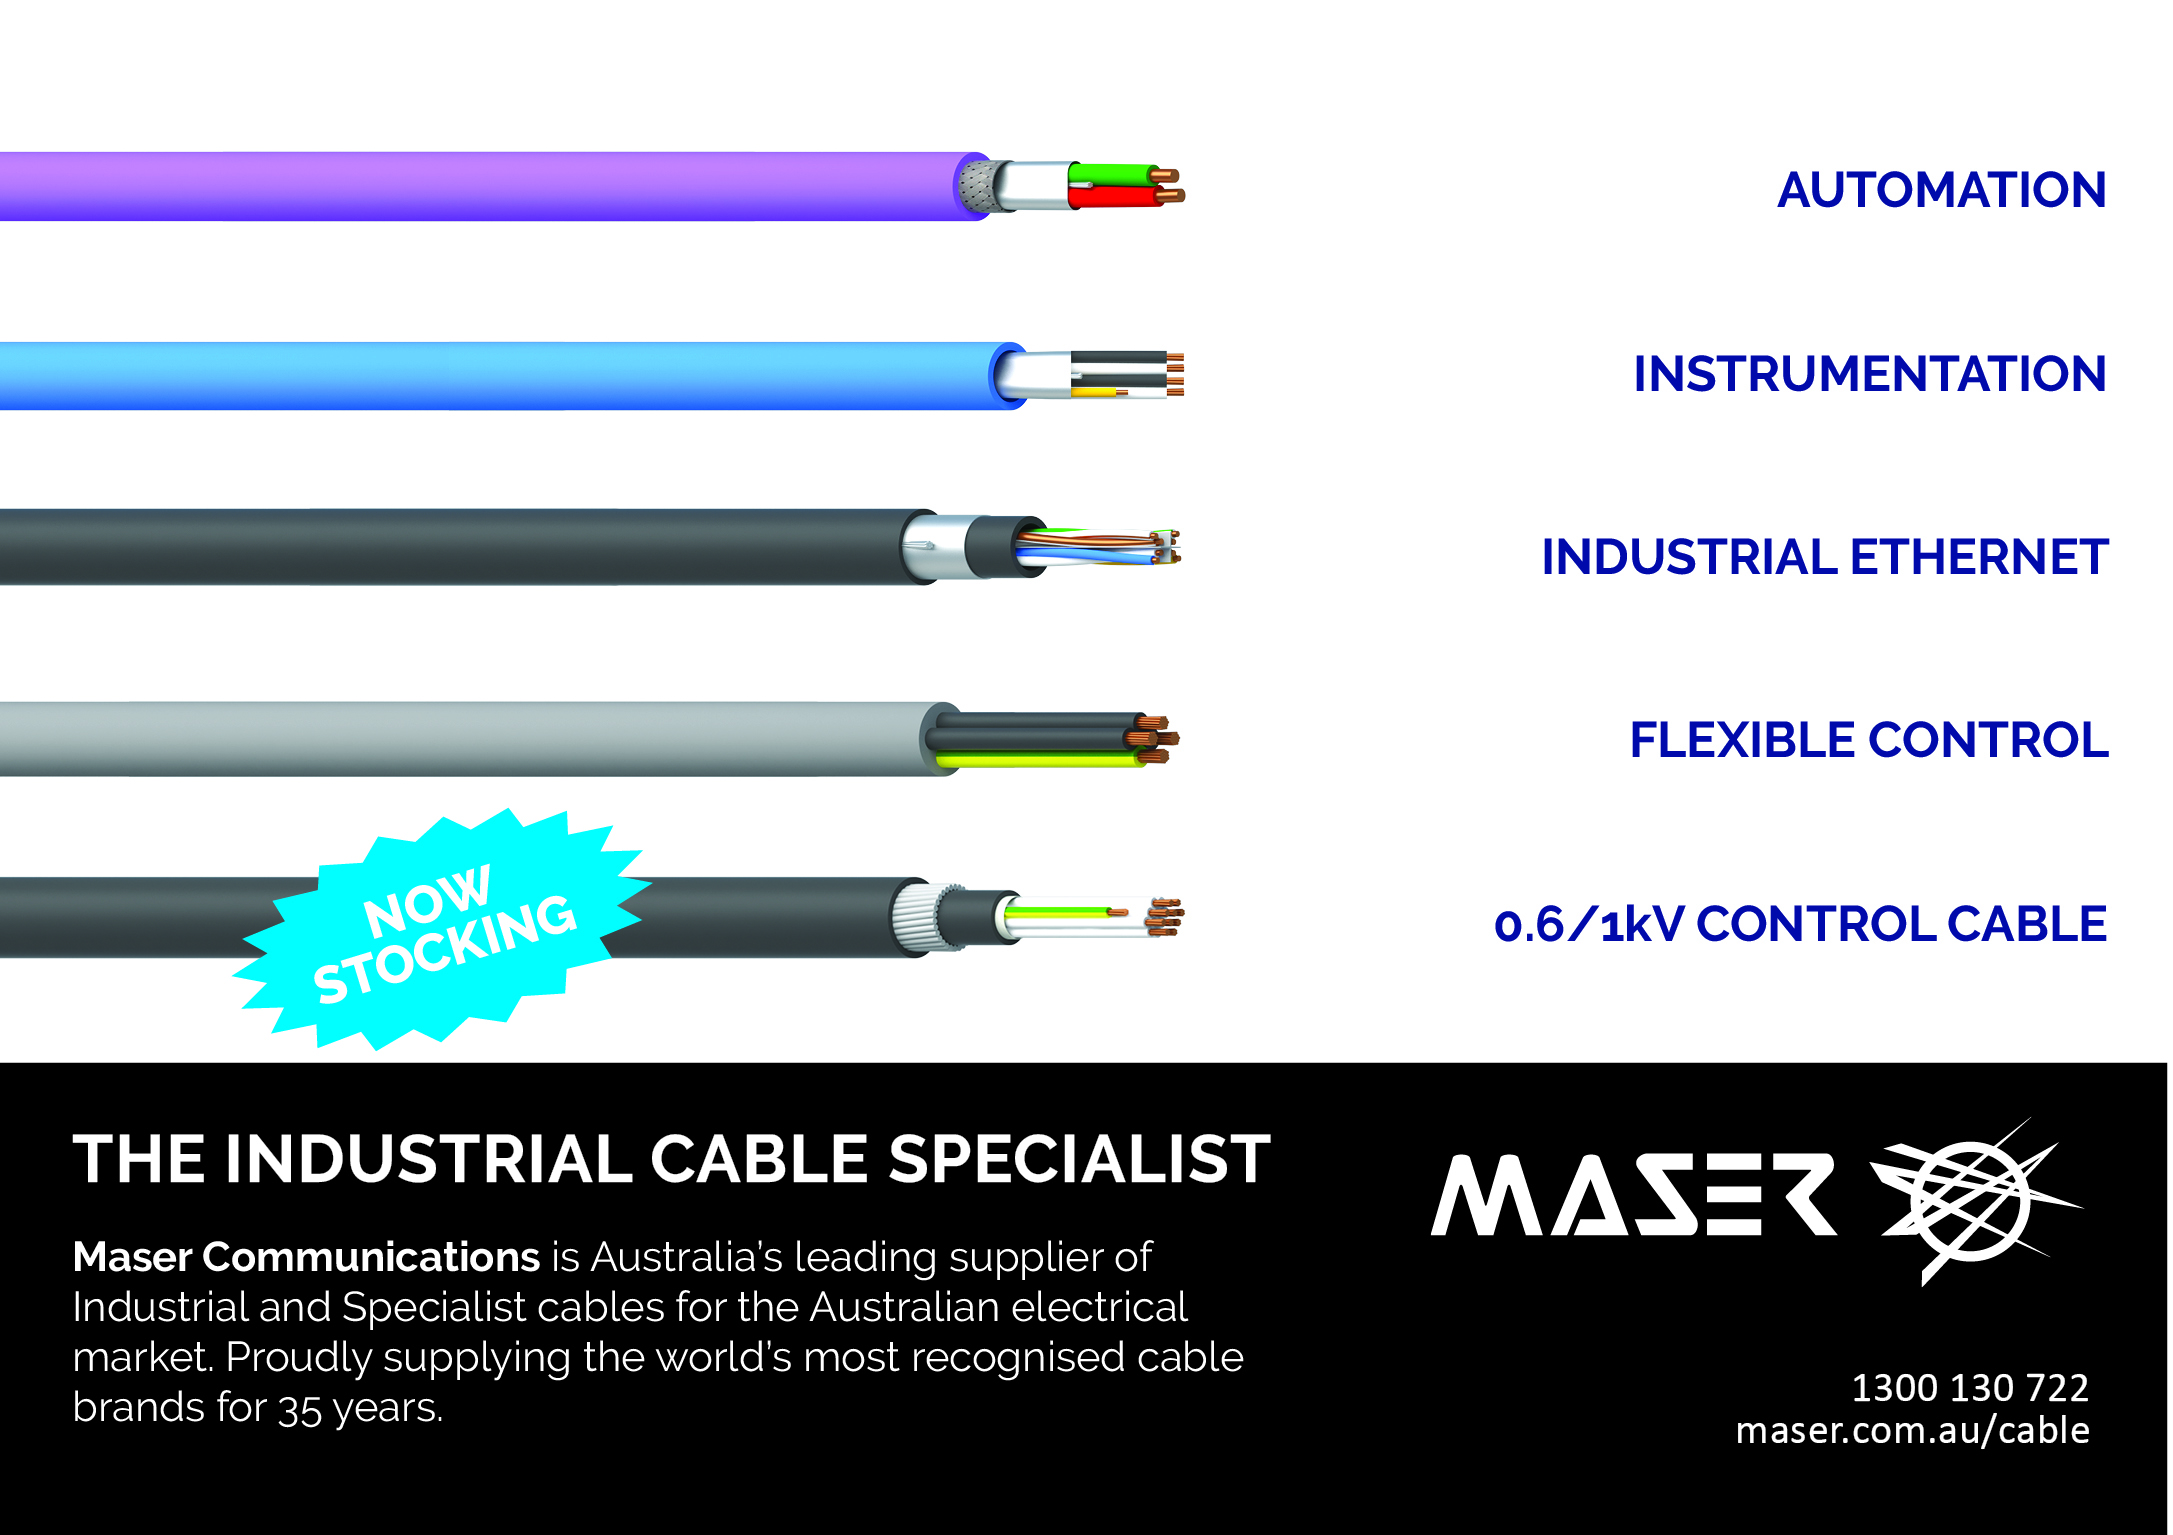 Maser – the Industrial Cable Specialist